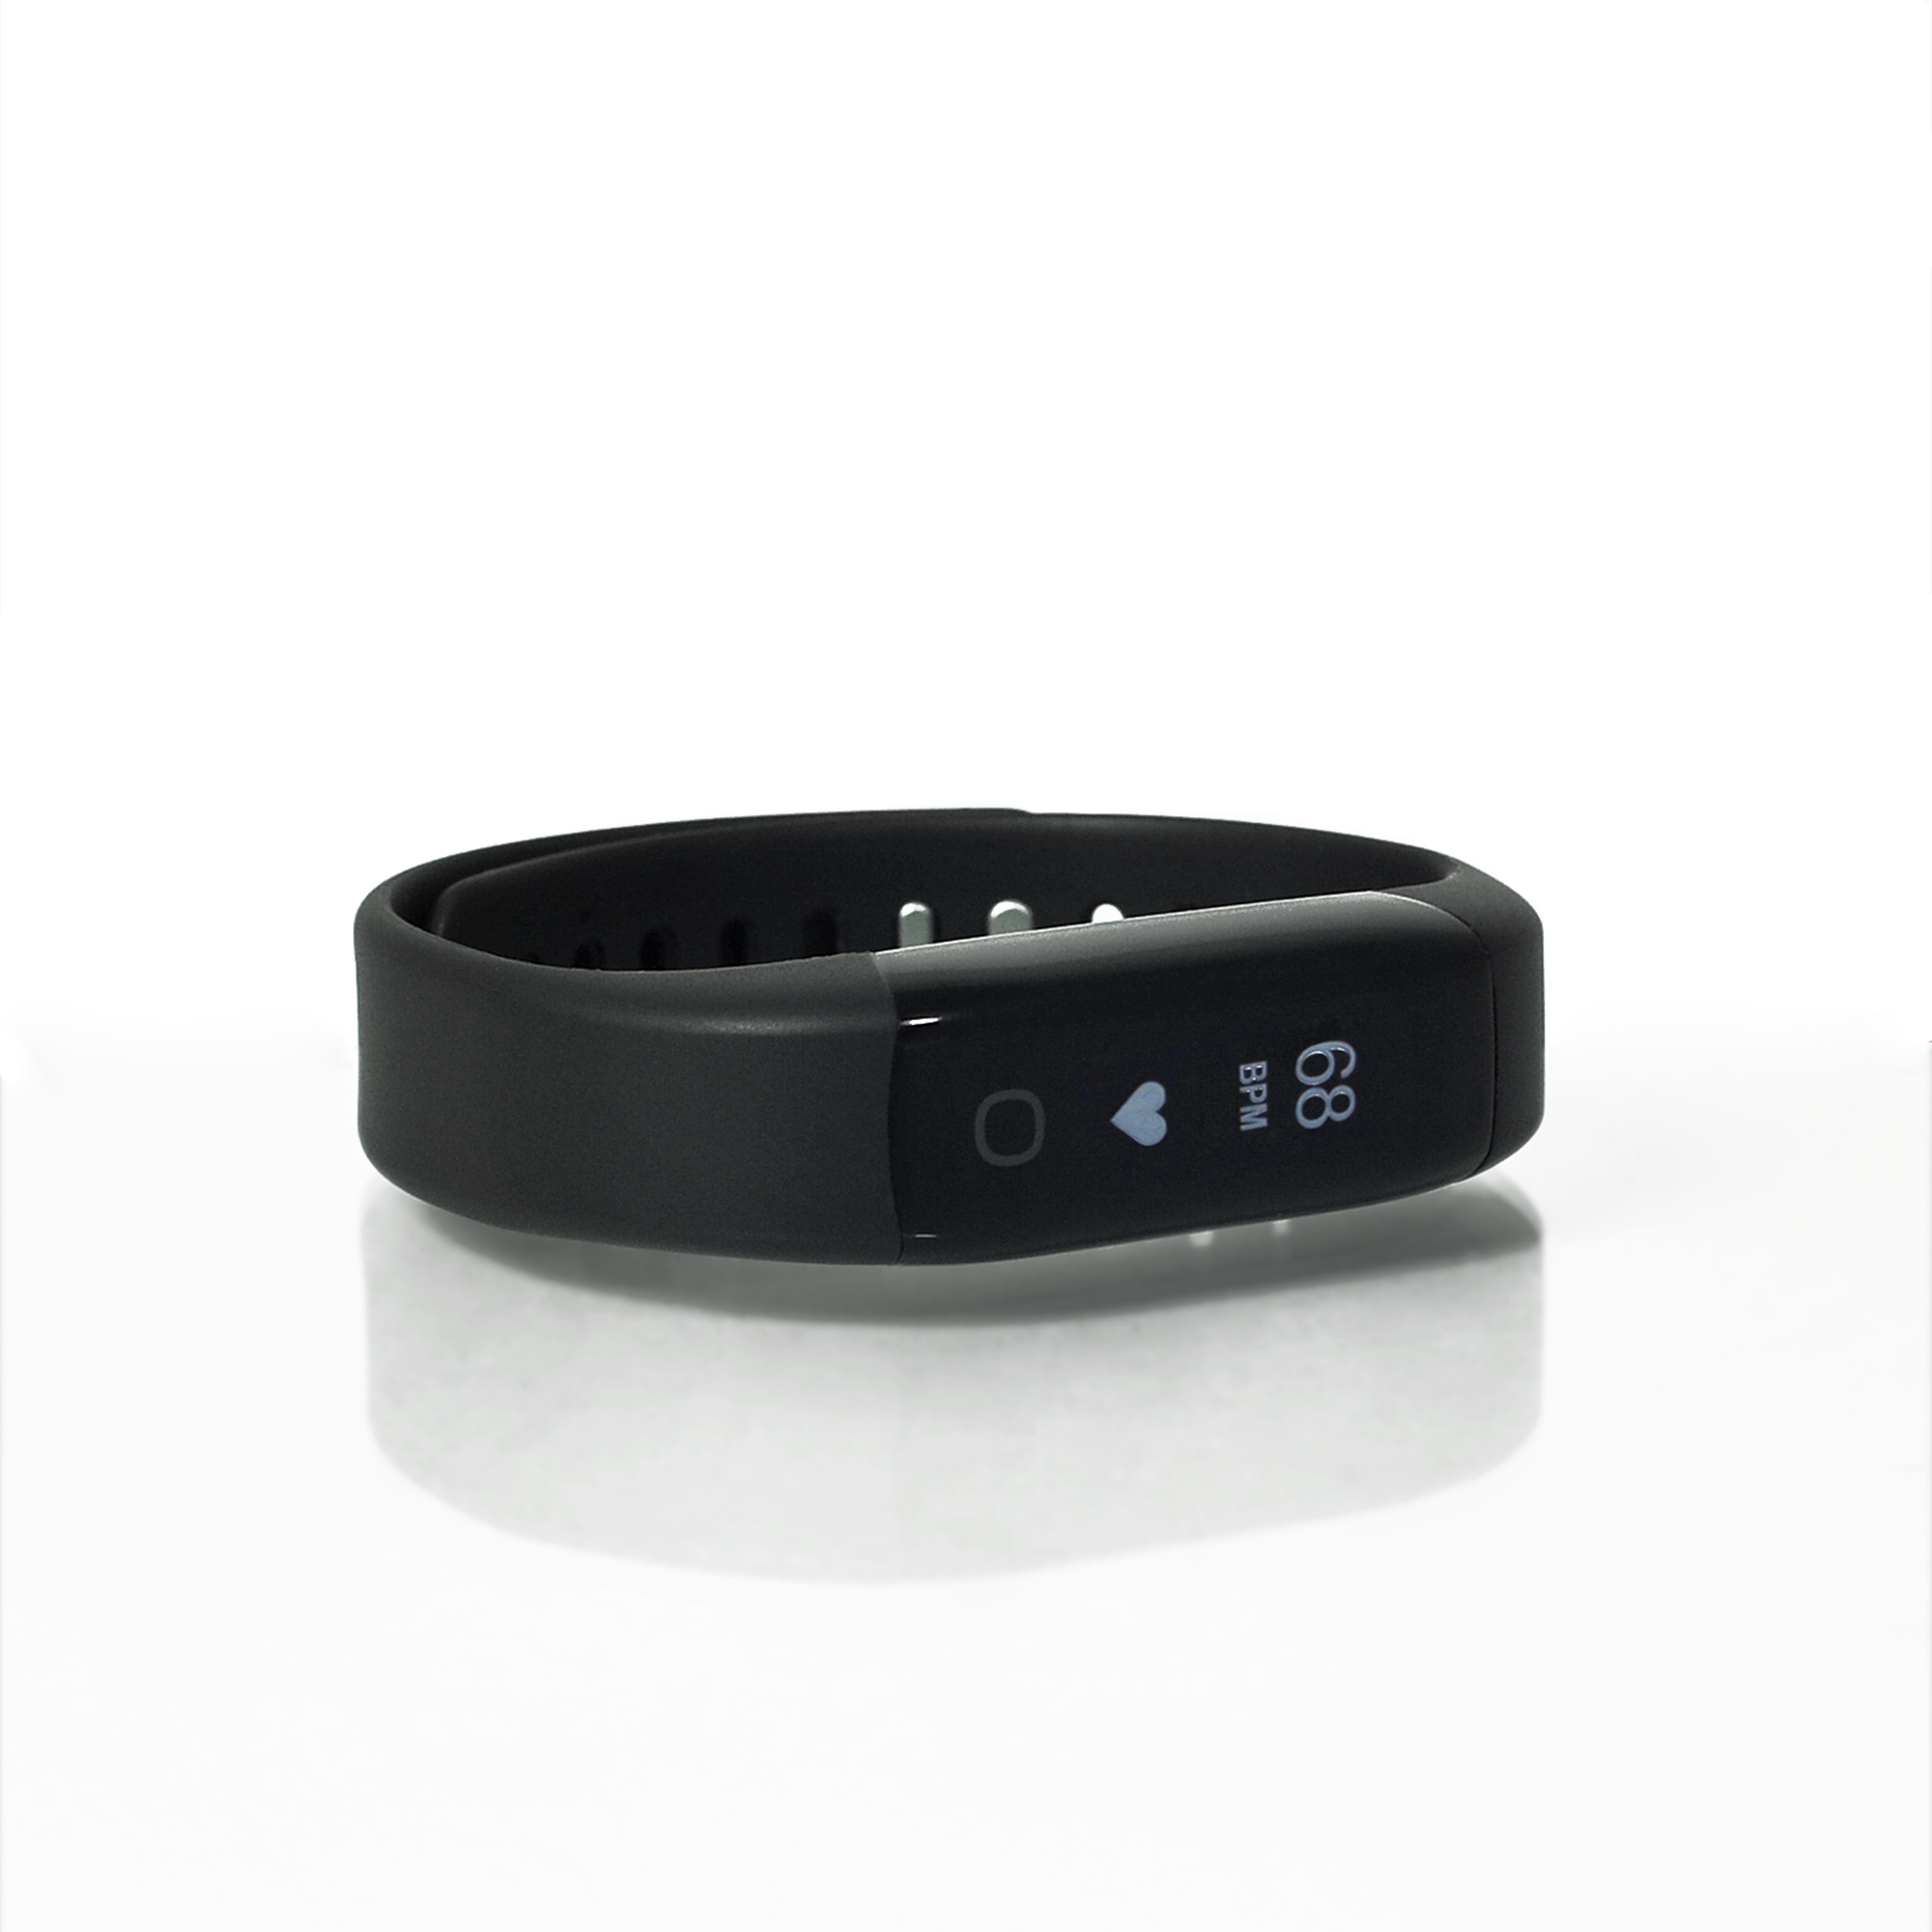 Leicke | Sharon WD67209 Fitness Activity Tracker Smartwatch